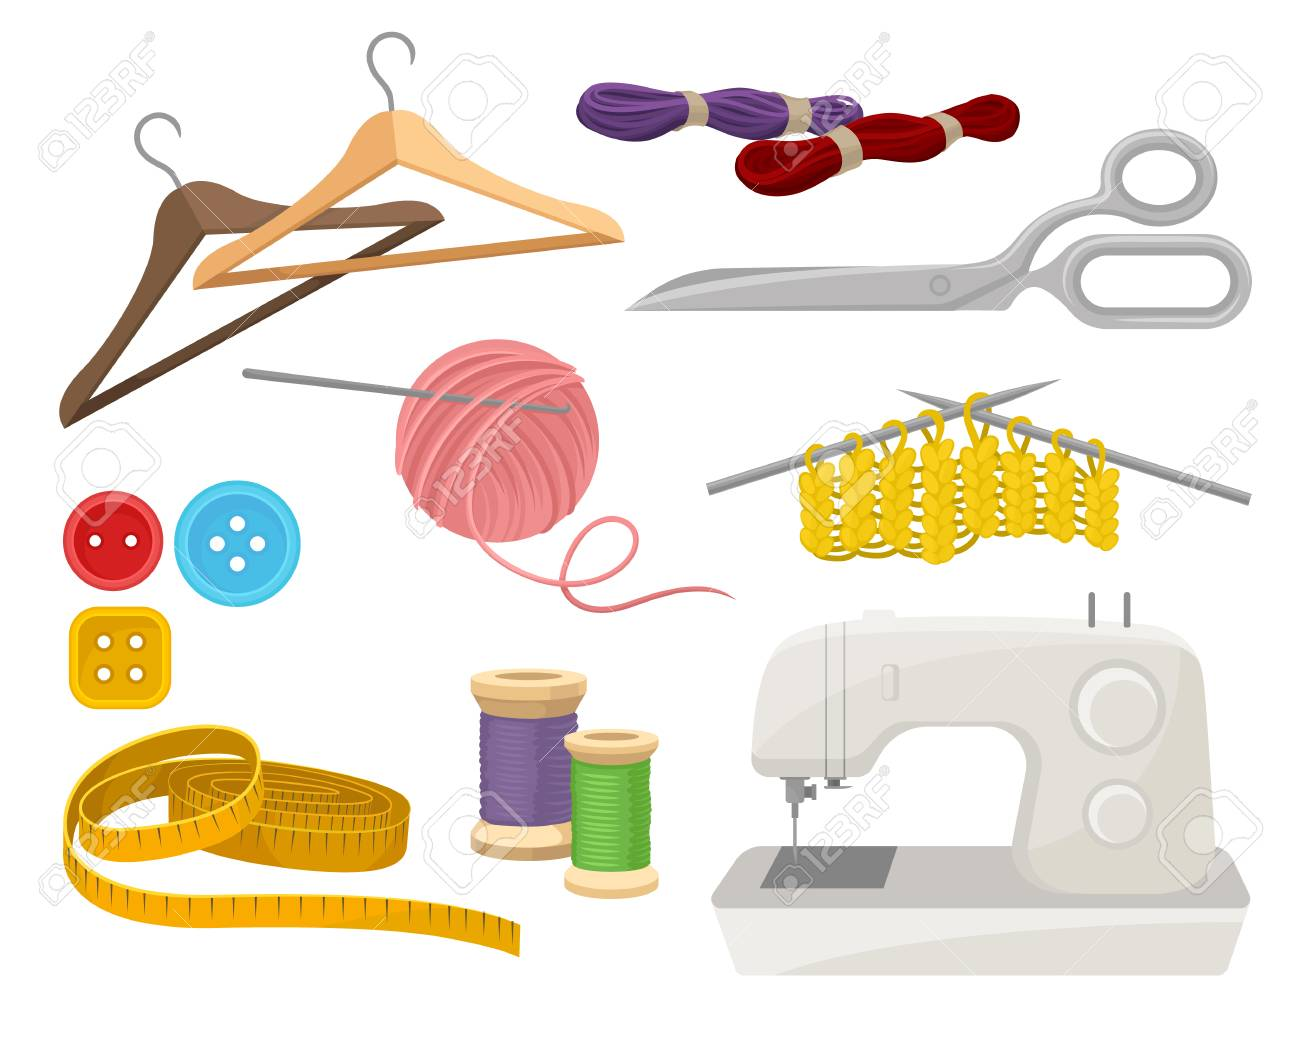 Collection of objects related to sewing and knitting theme. Dressmaking instruments and materials. Electric sewing machine. Colorful vector illustrations in flat style isolated on white background. - 126147517